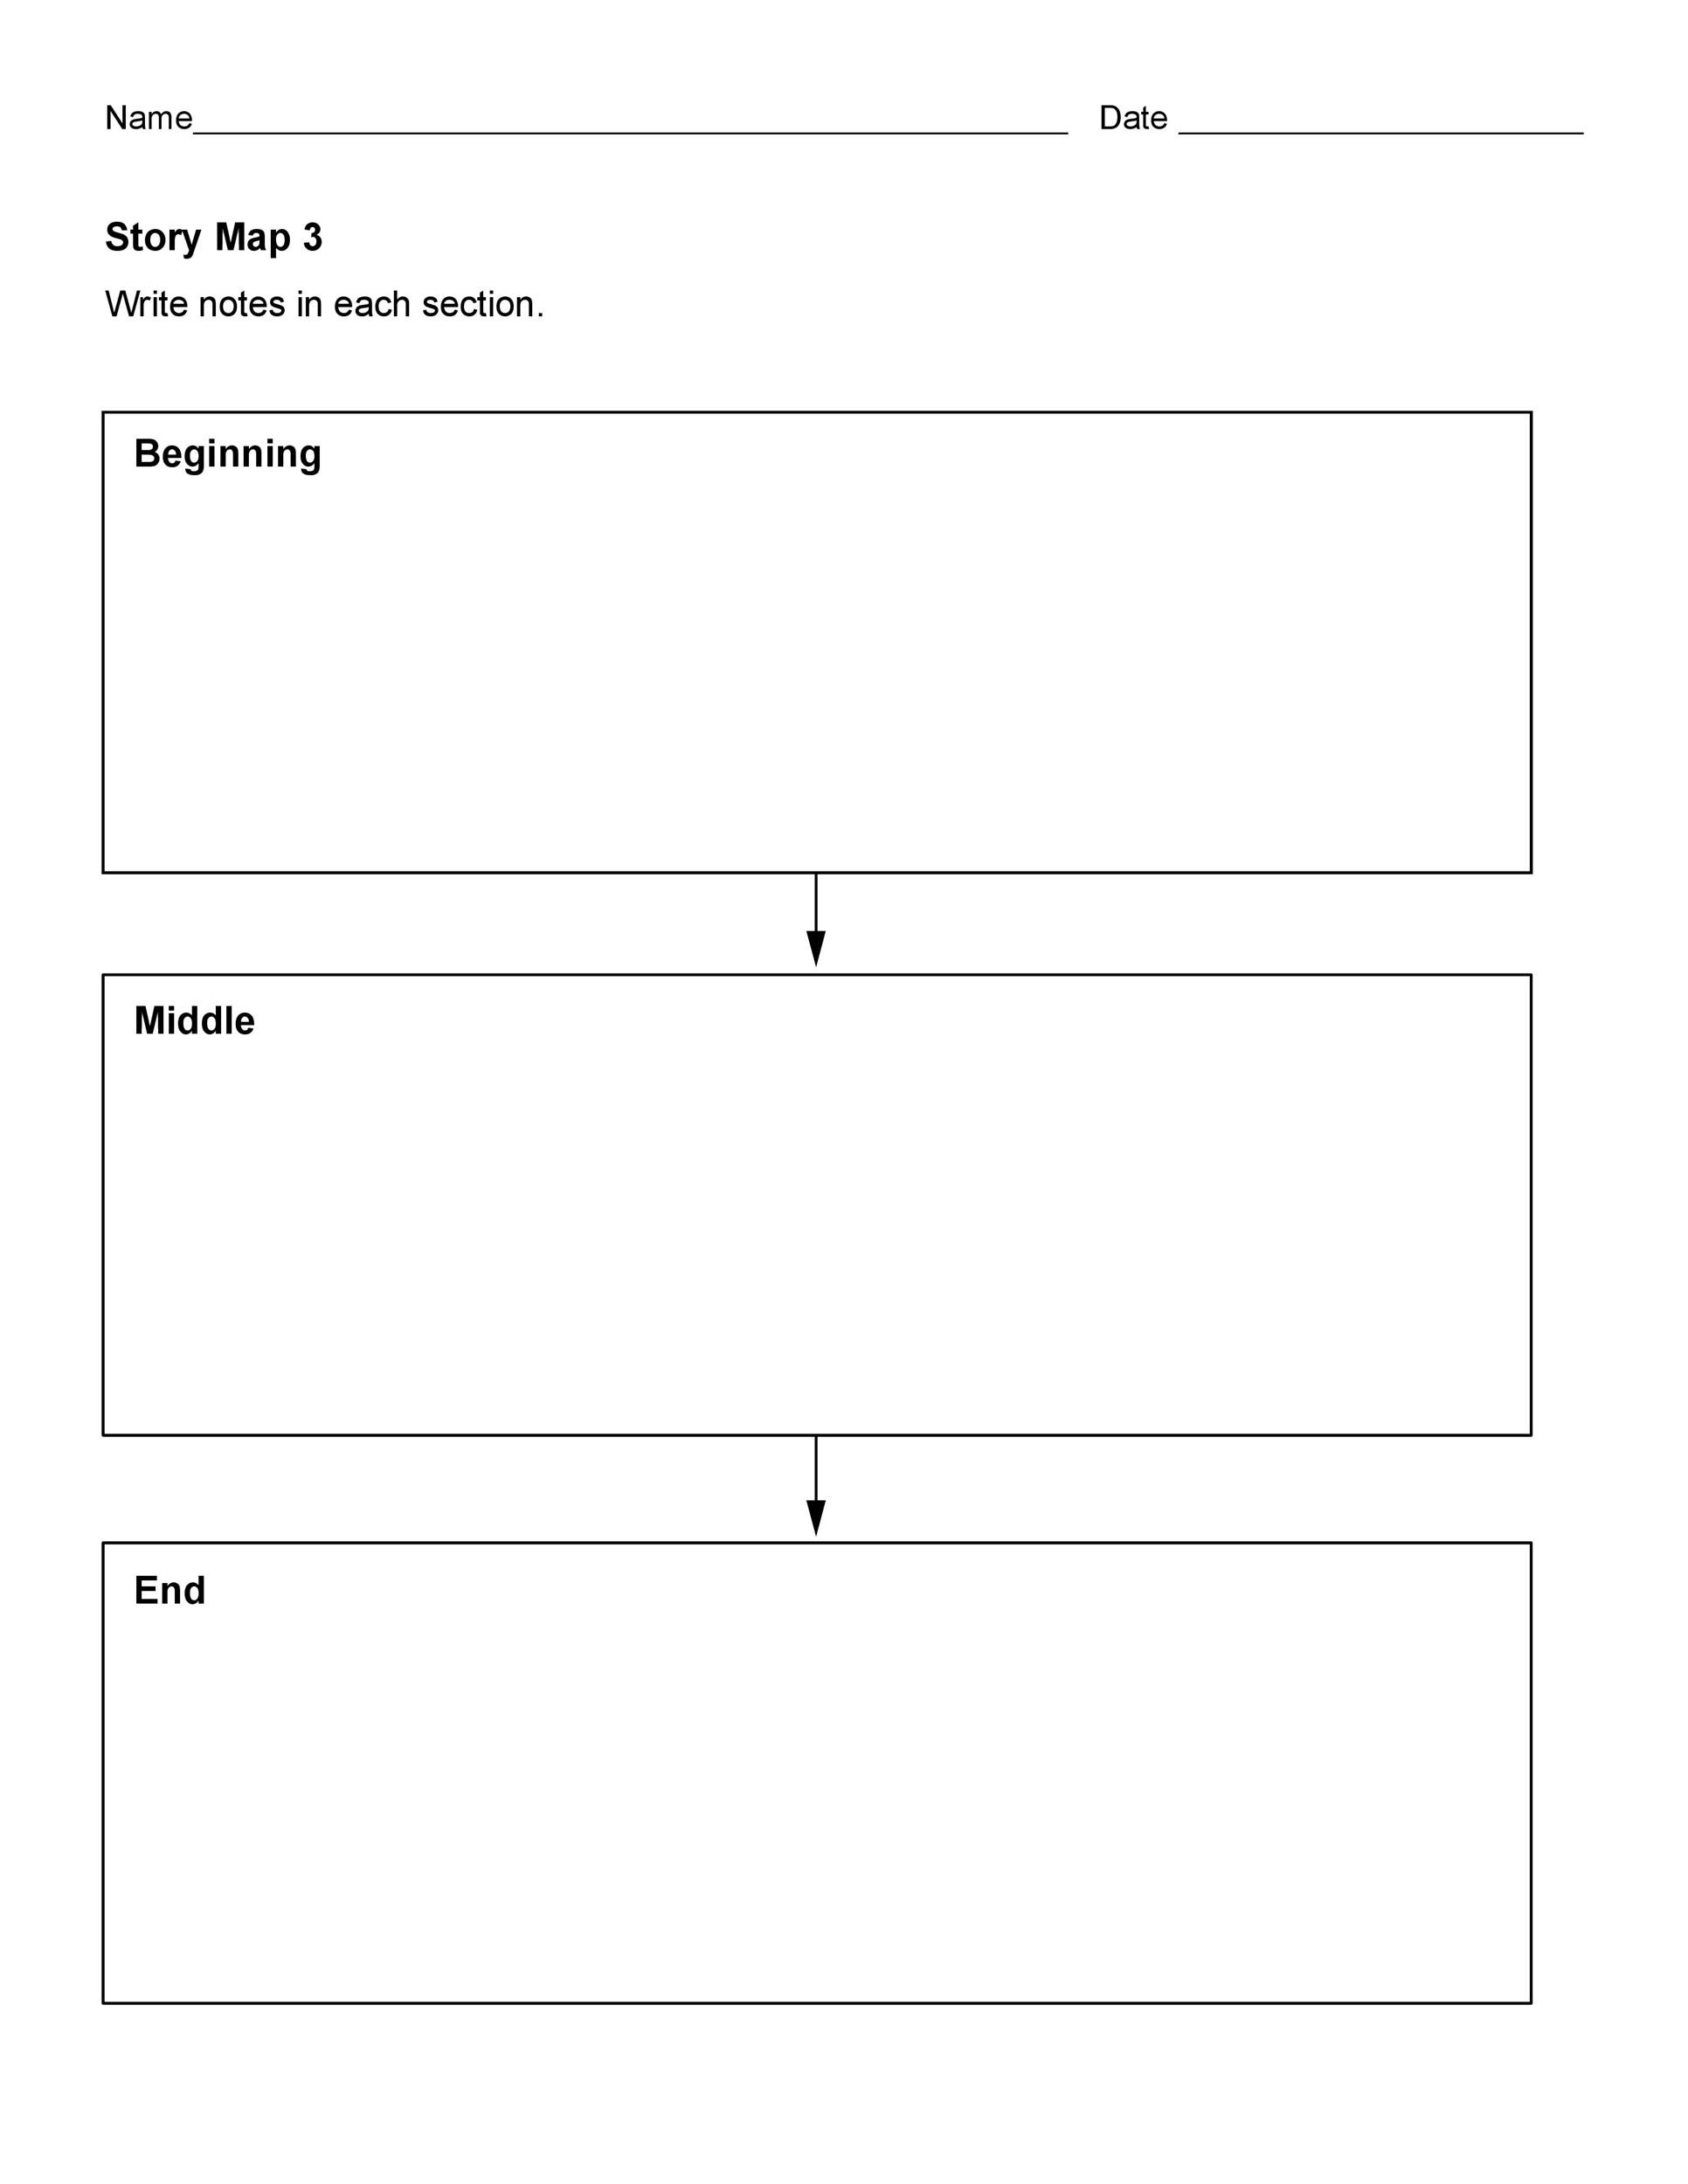 photo relating to Printable Story Maps named 41 Cost-free Printable Tale Map Templates [PDF / Term] ᐅ